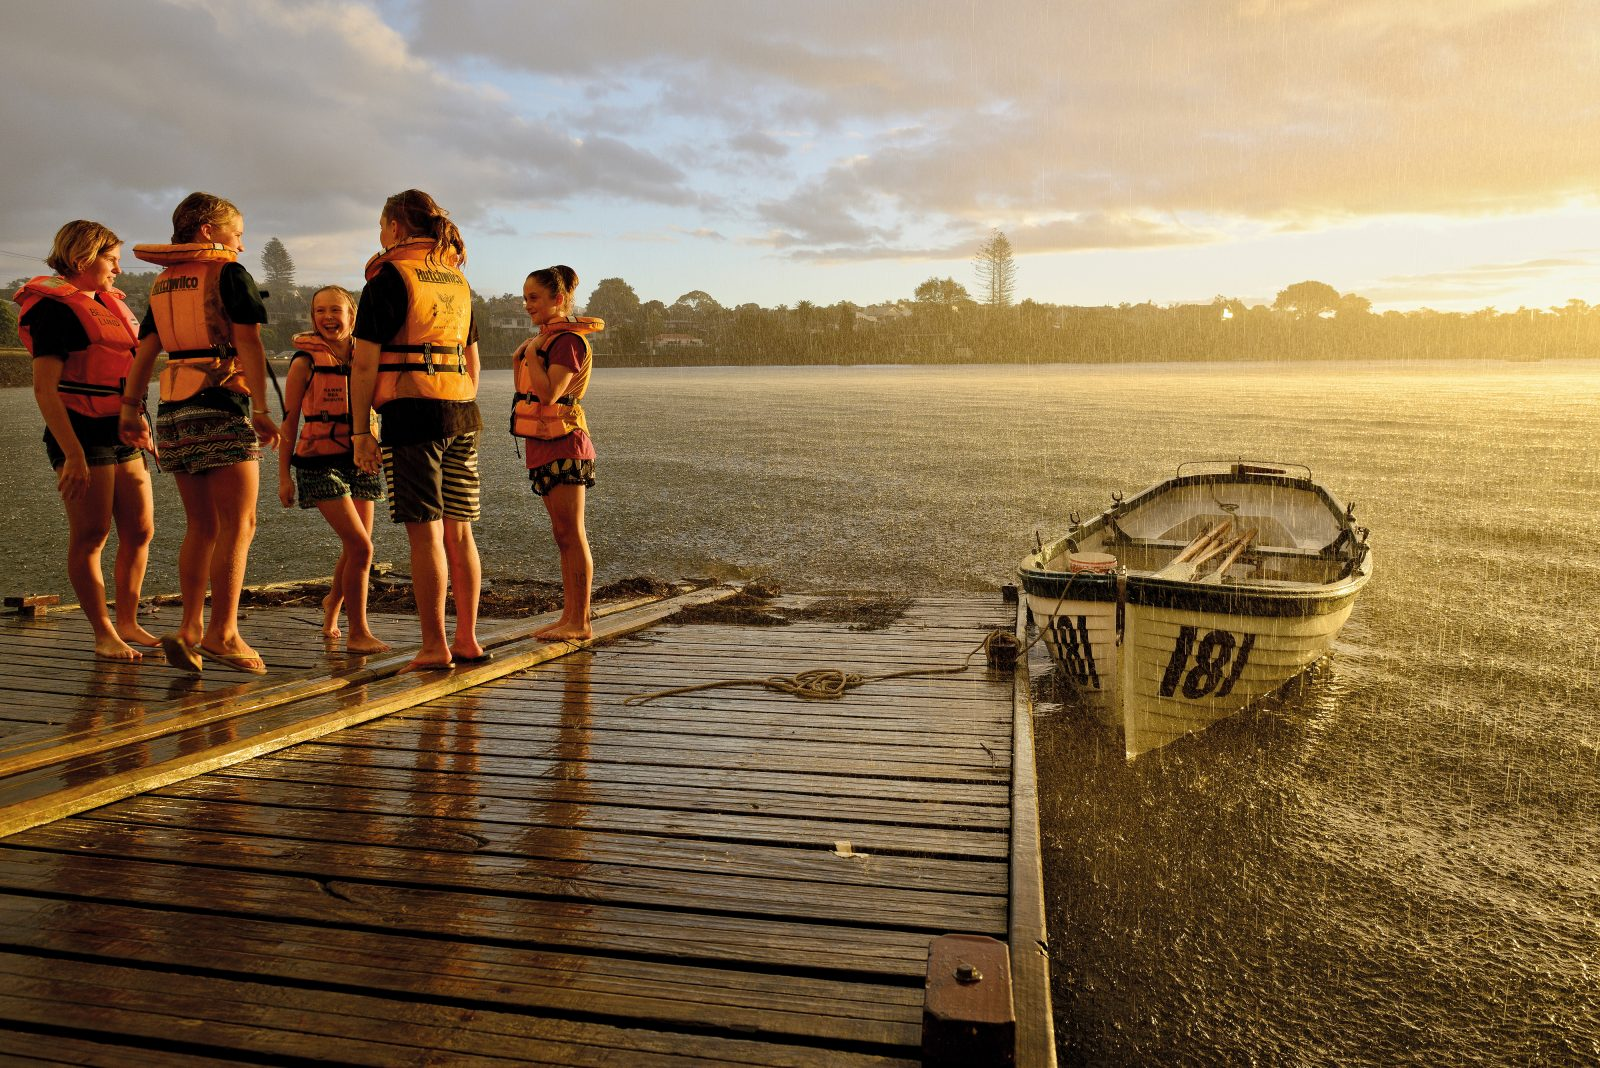 For more than a century, Auckland children have learned nautical skills at Cox's Bay, where the Hawke Sea Scouts have their clubhouse. Water conditions in the often-polluted bay determine which activities can be held safely. On a club night in late summer, a sudden downpour cut short the group's rowing practice, and the evening's water activity turned into dancing in the rain.